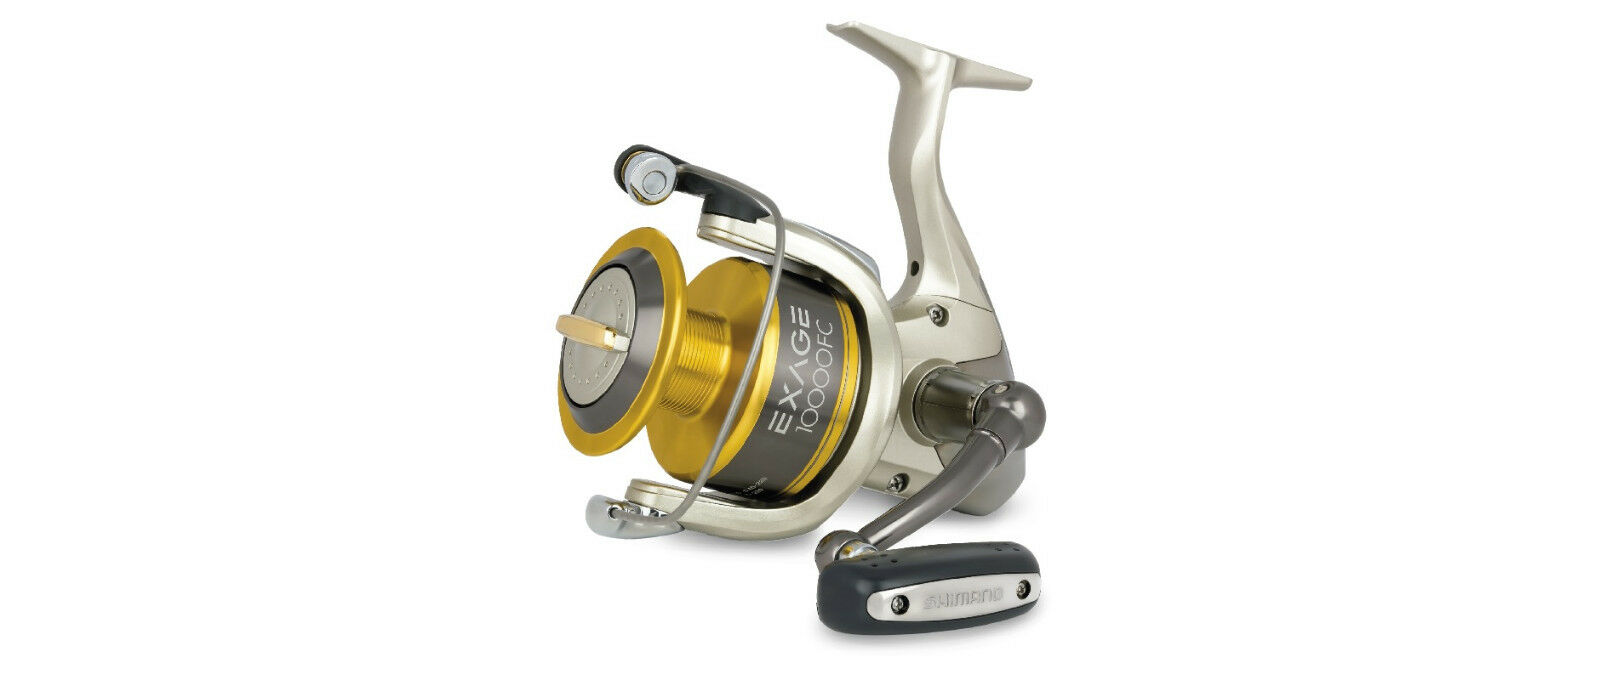 Shimano Exage FC  Rolle Karpfenrolle Reel Salzwasserrolle  famous brand